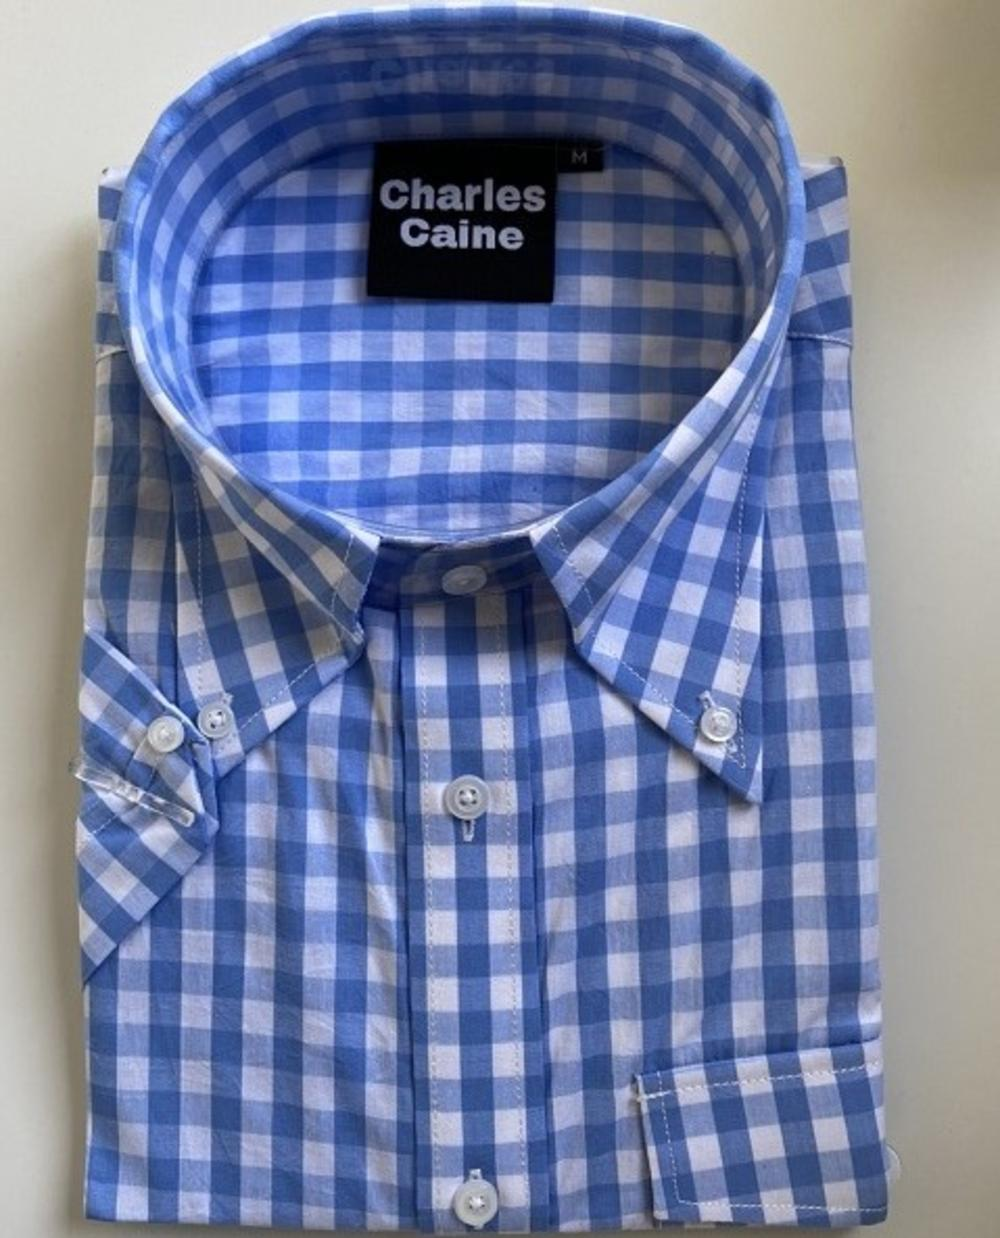 Charles Caine Gingham Button Down Short Sleeve Shirt Blue